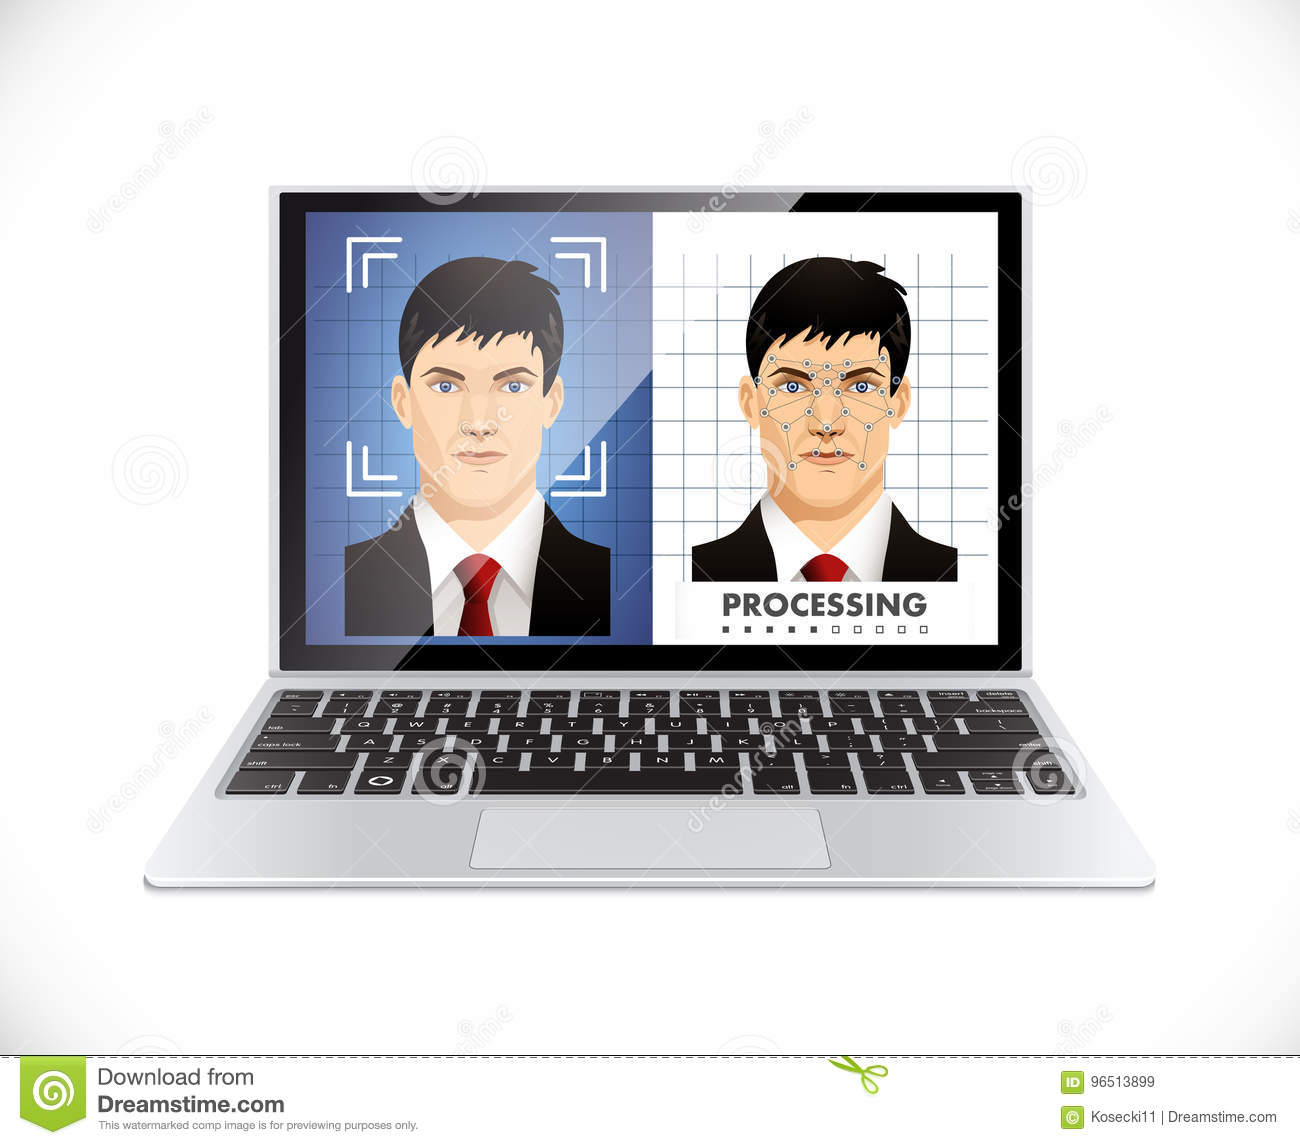 Face recognition software free download full version